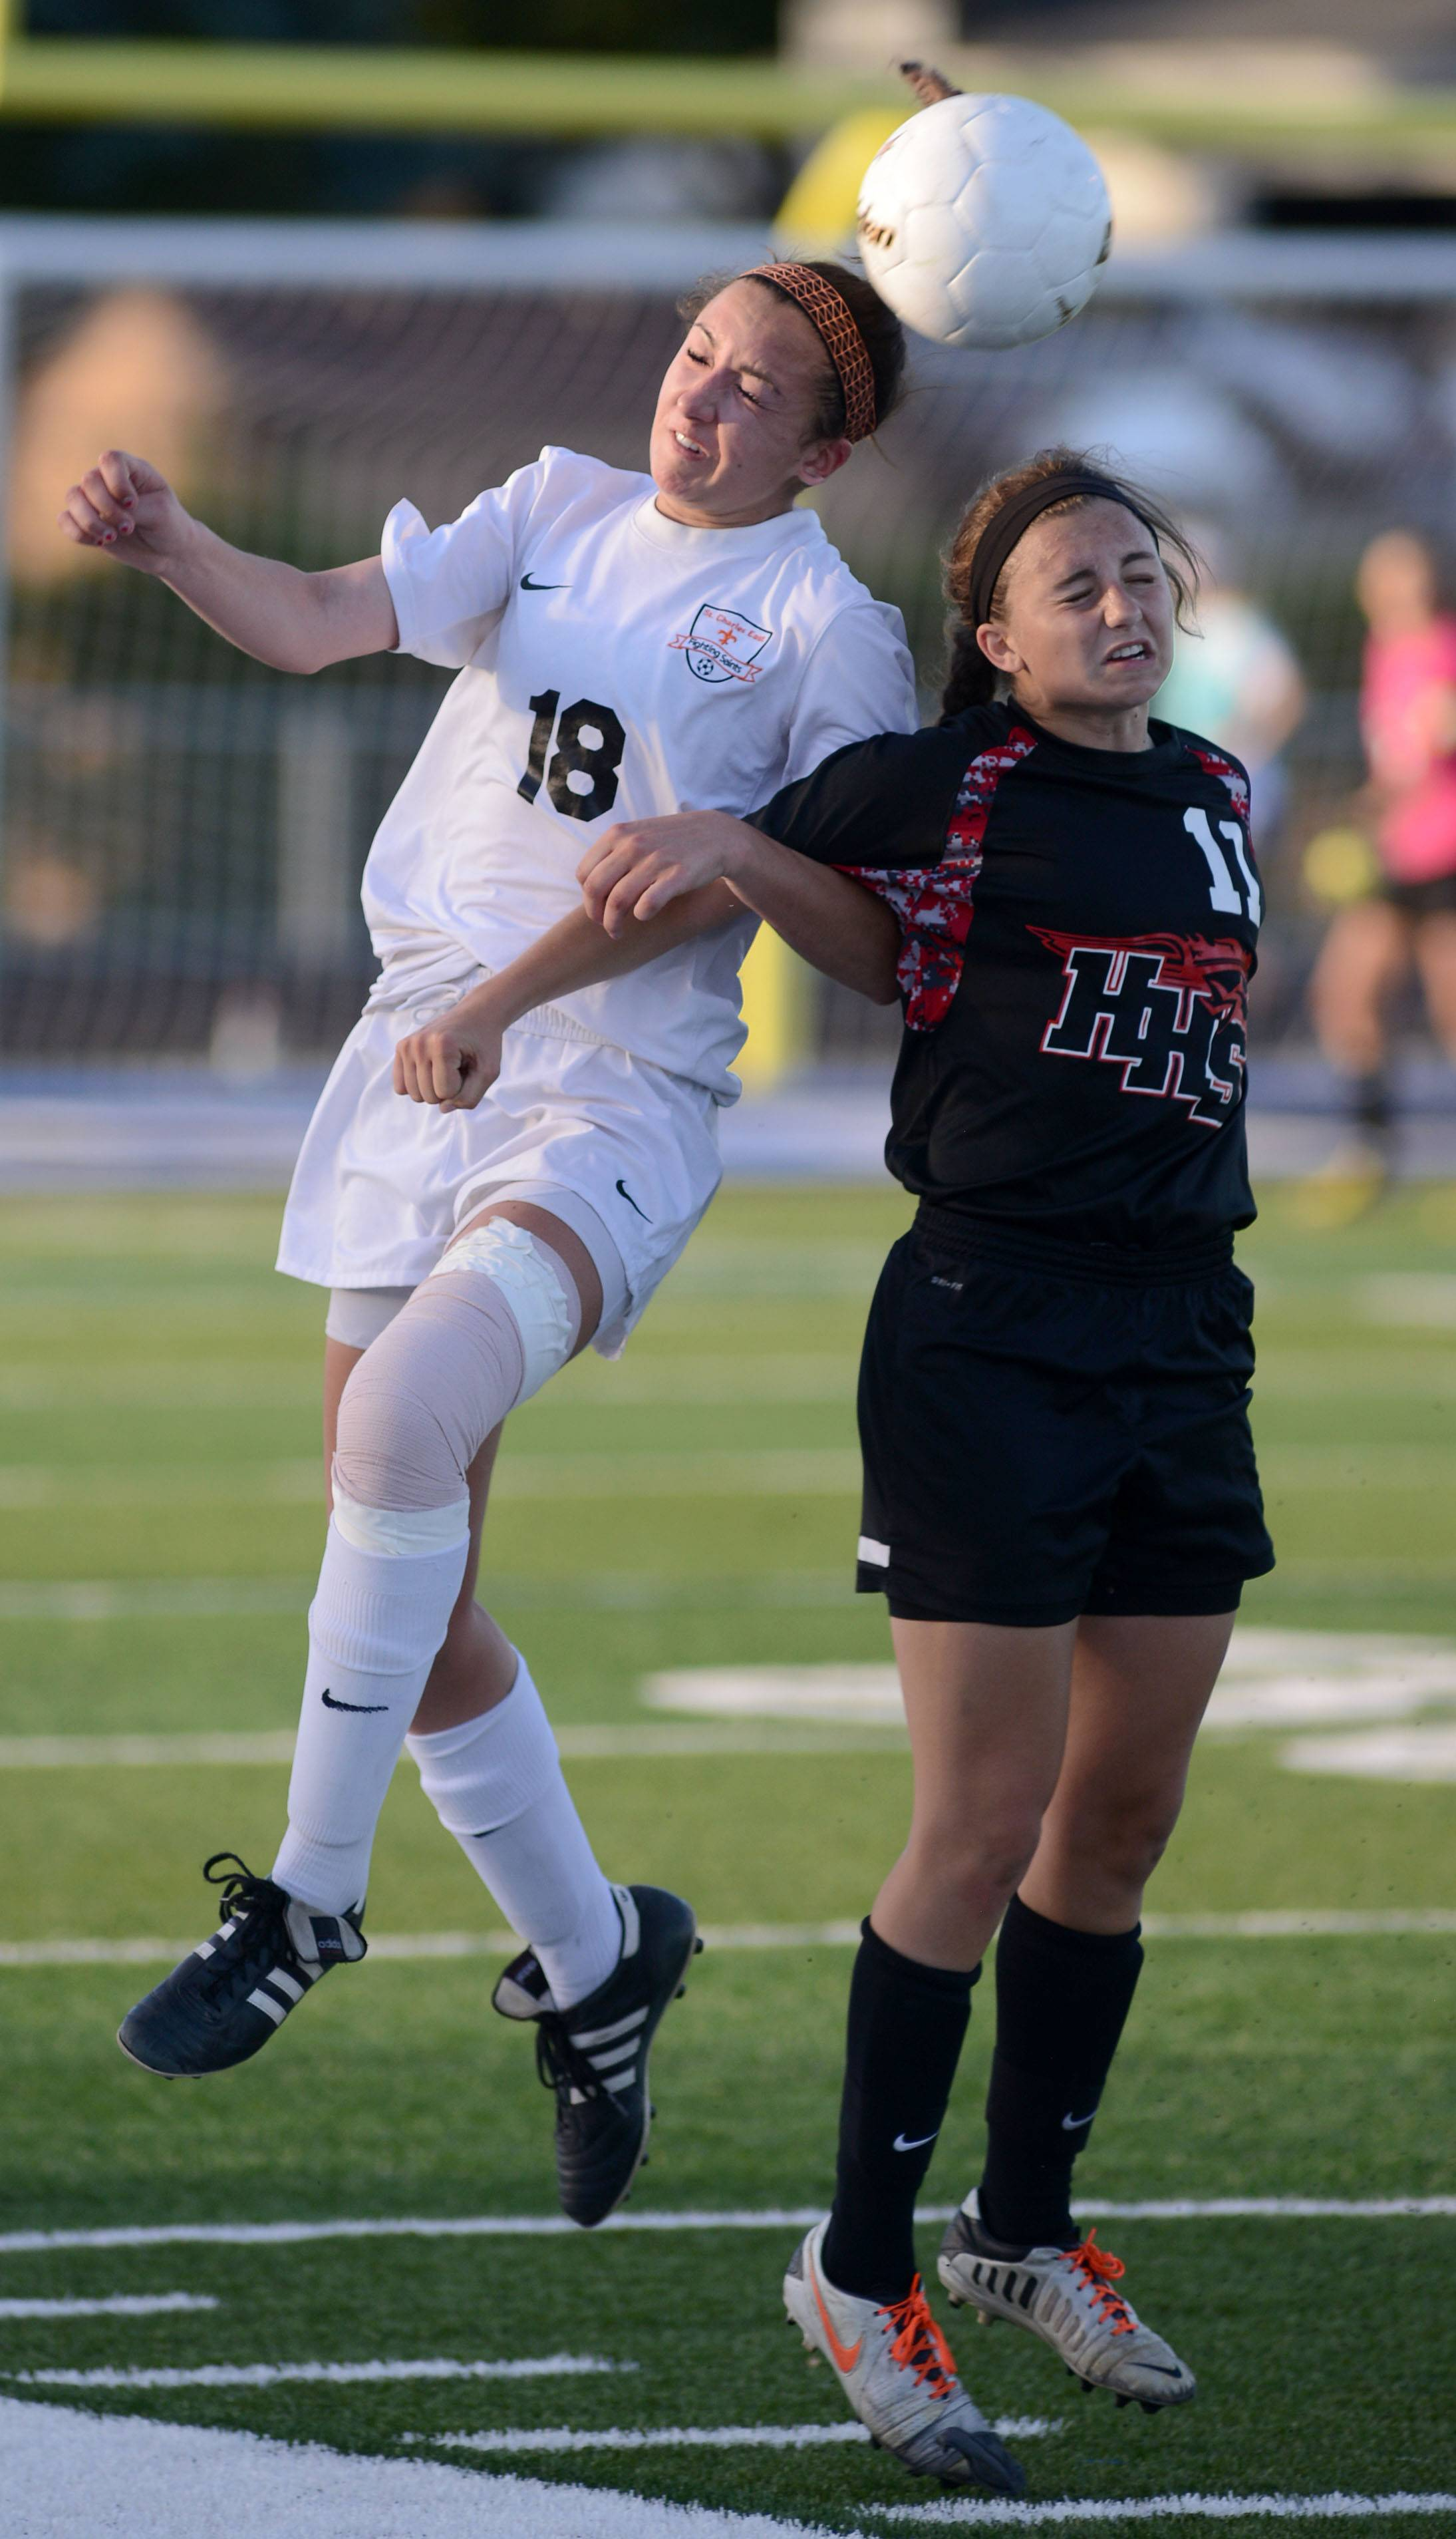 St. Charles East's Mallory Mollenhauer and Huntley's Taryn Jakubowski fight for the ball in the second half of the Class 3A girls soccer supersectional at Lake Park High School in Roselle on Tuesday, June 3.